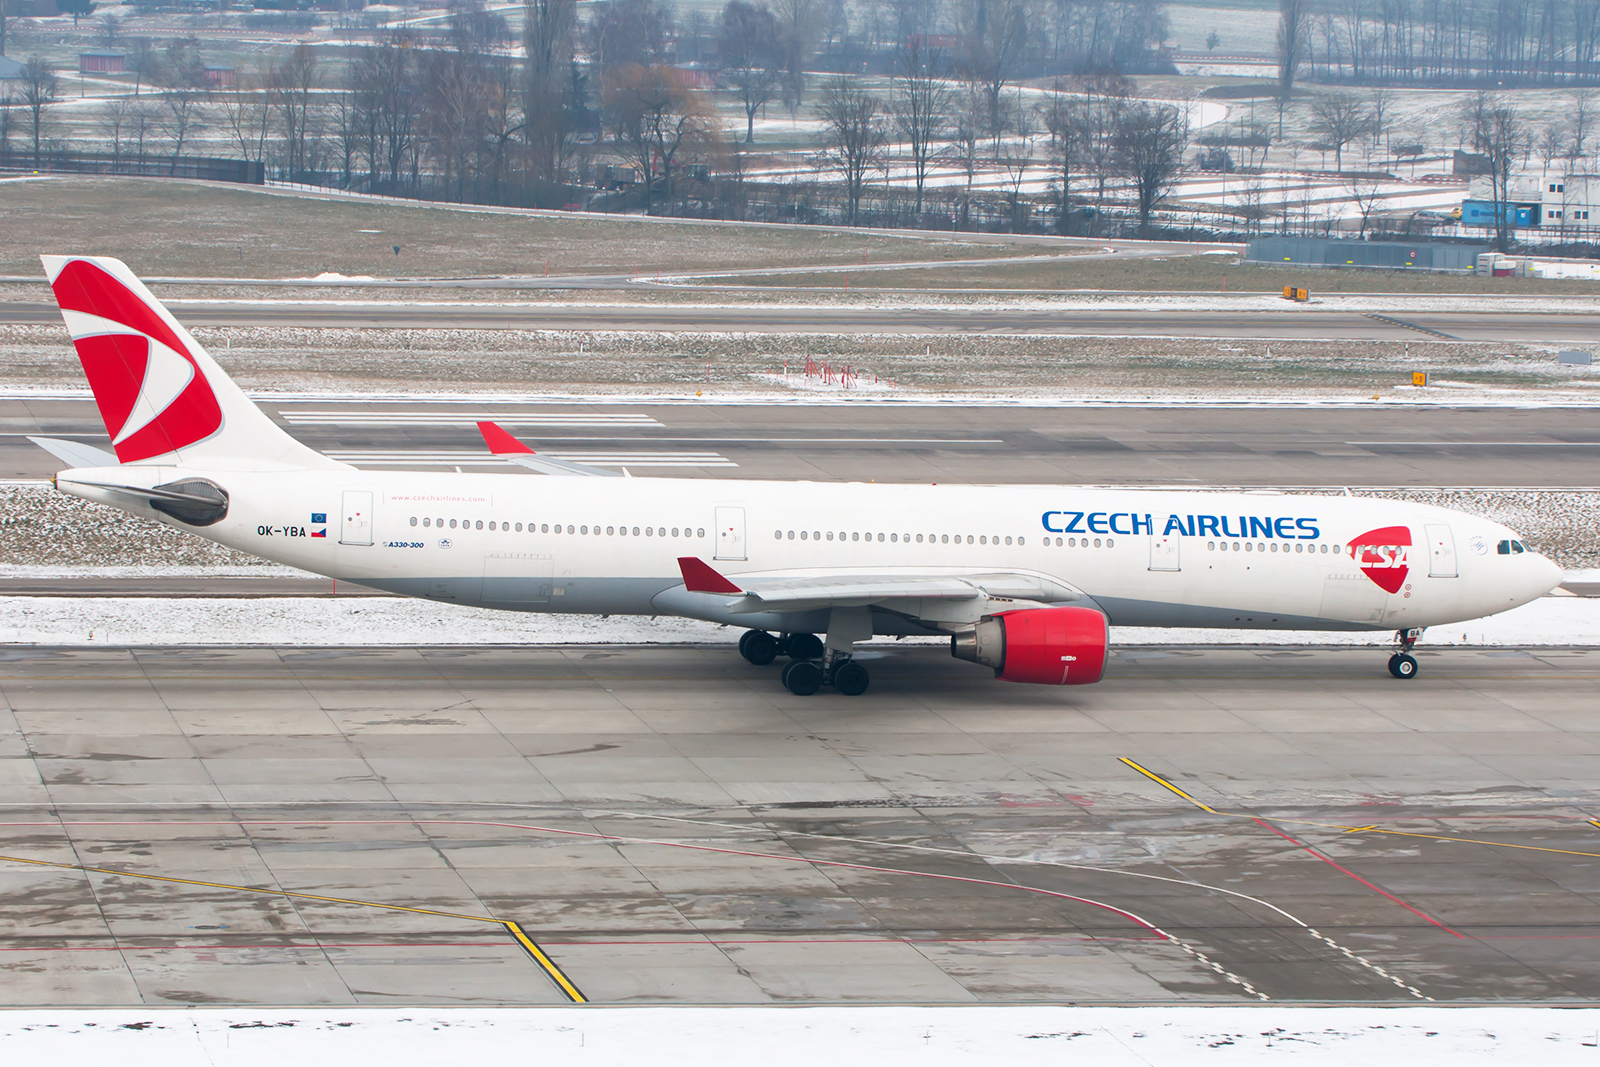 CSA leaves ZRH after a short maintenance